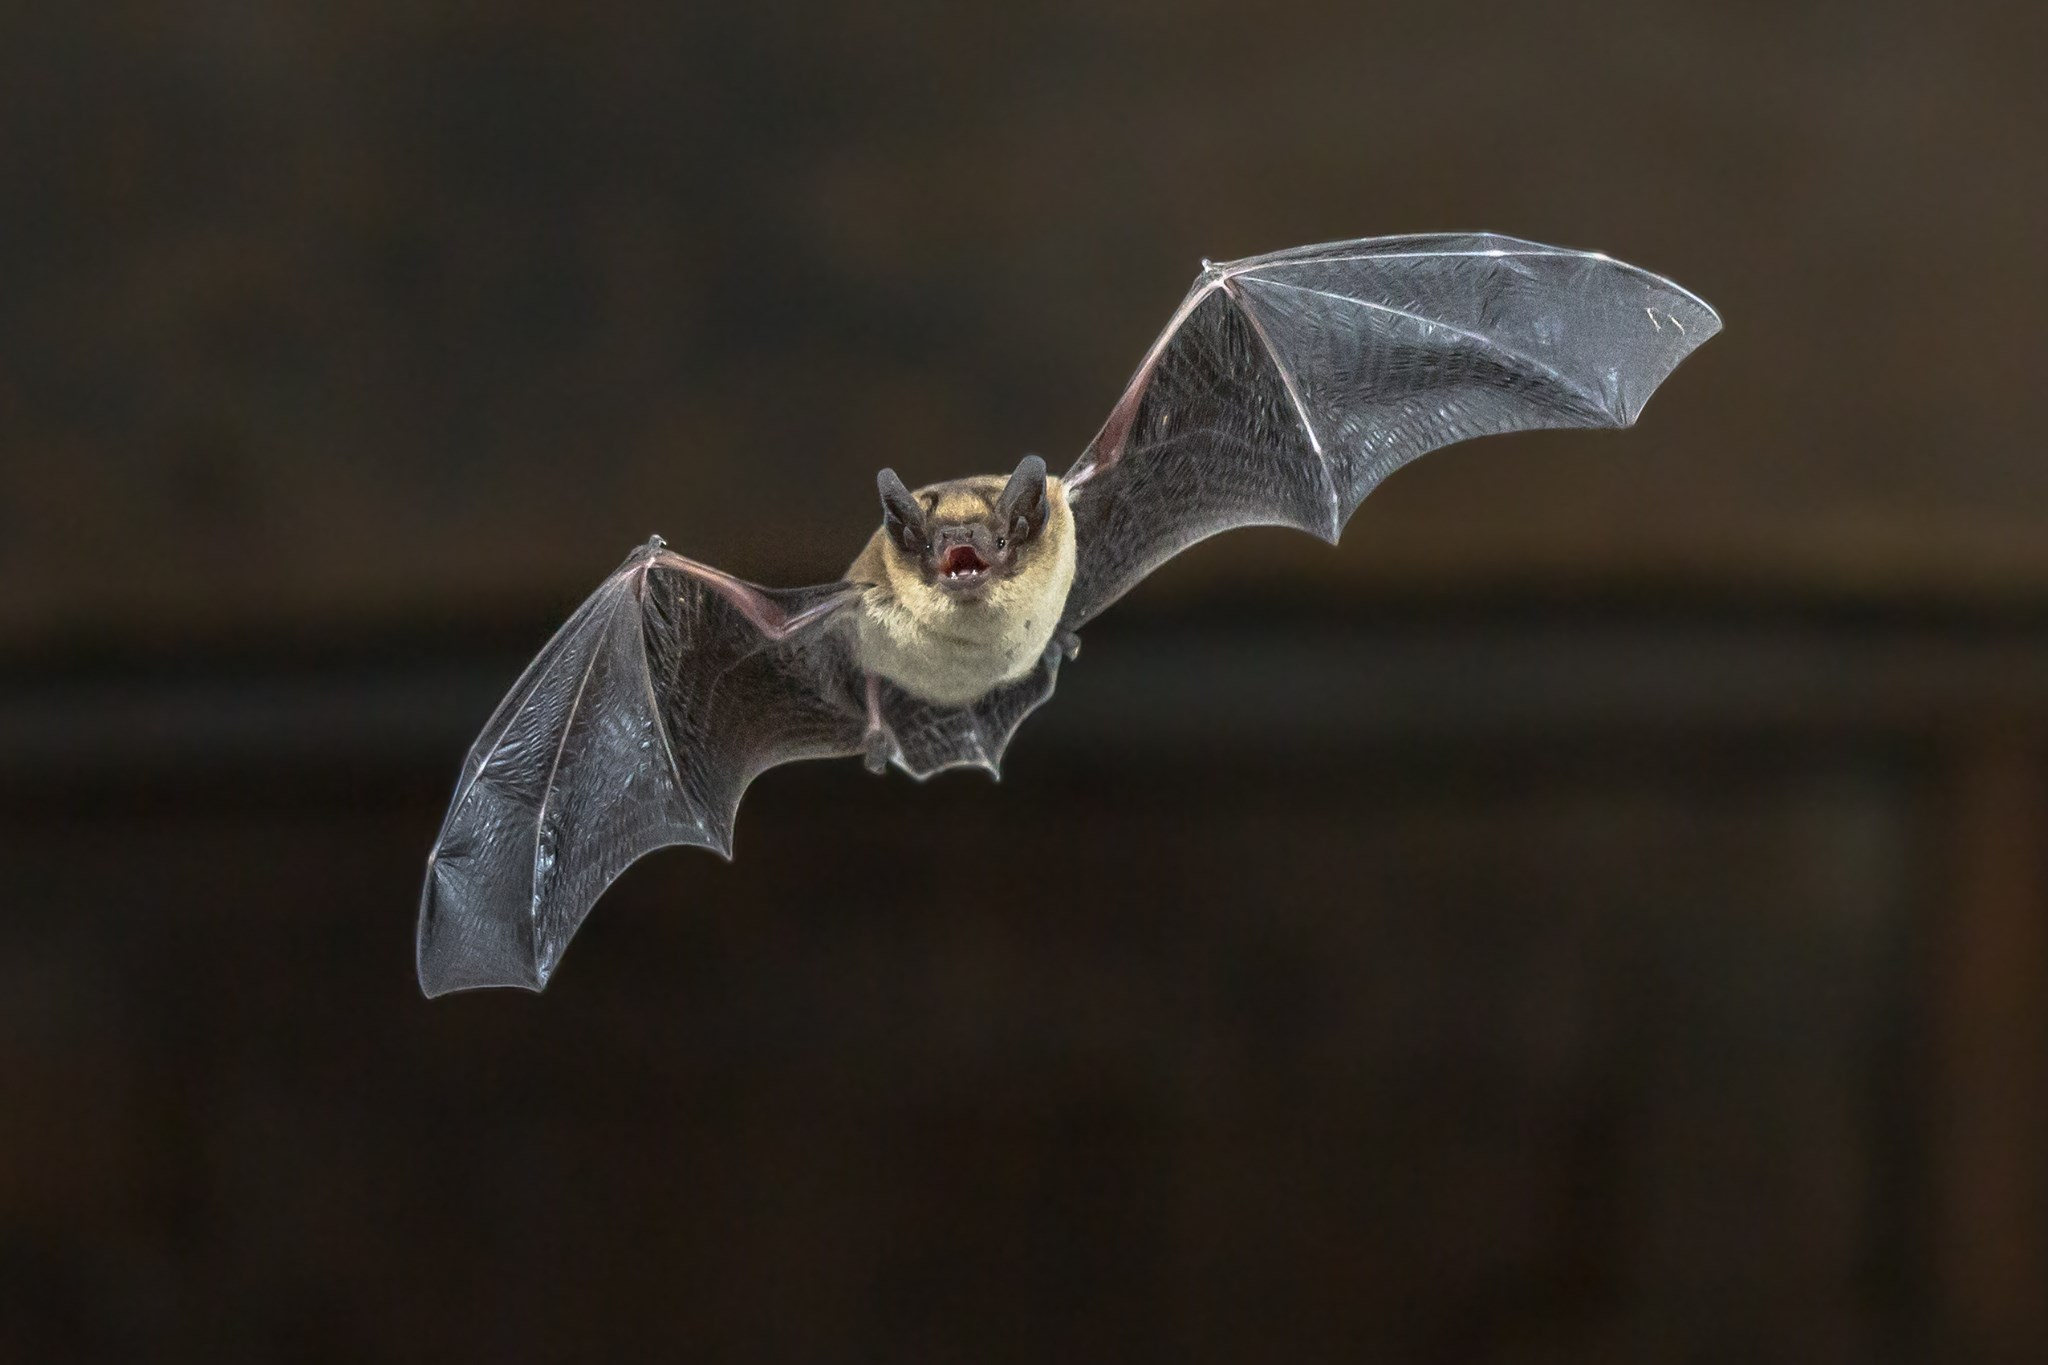 Image depicts picture of a bat on a dark background